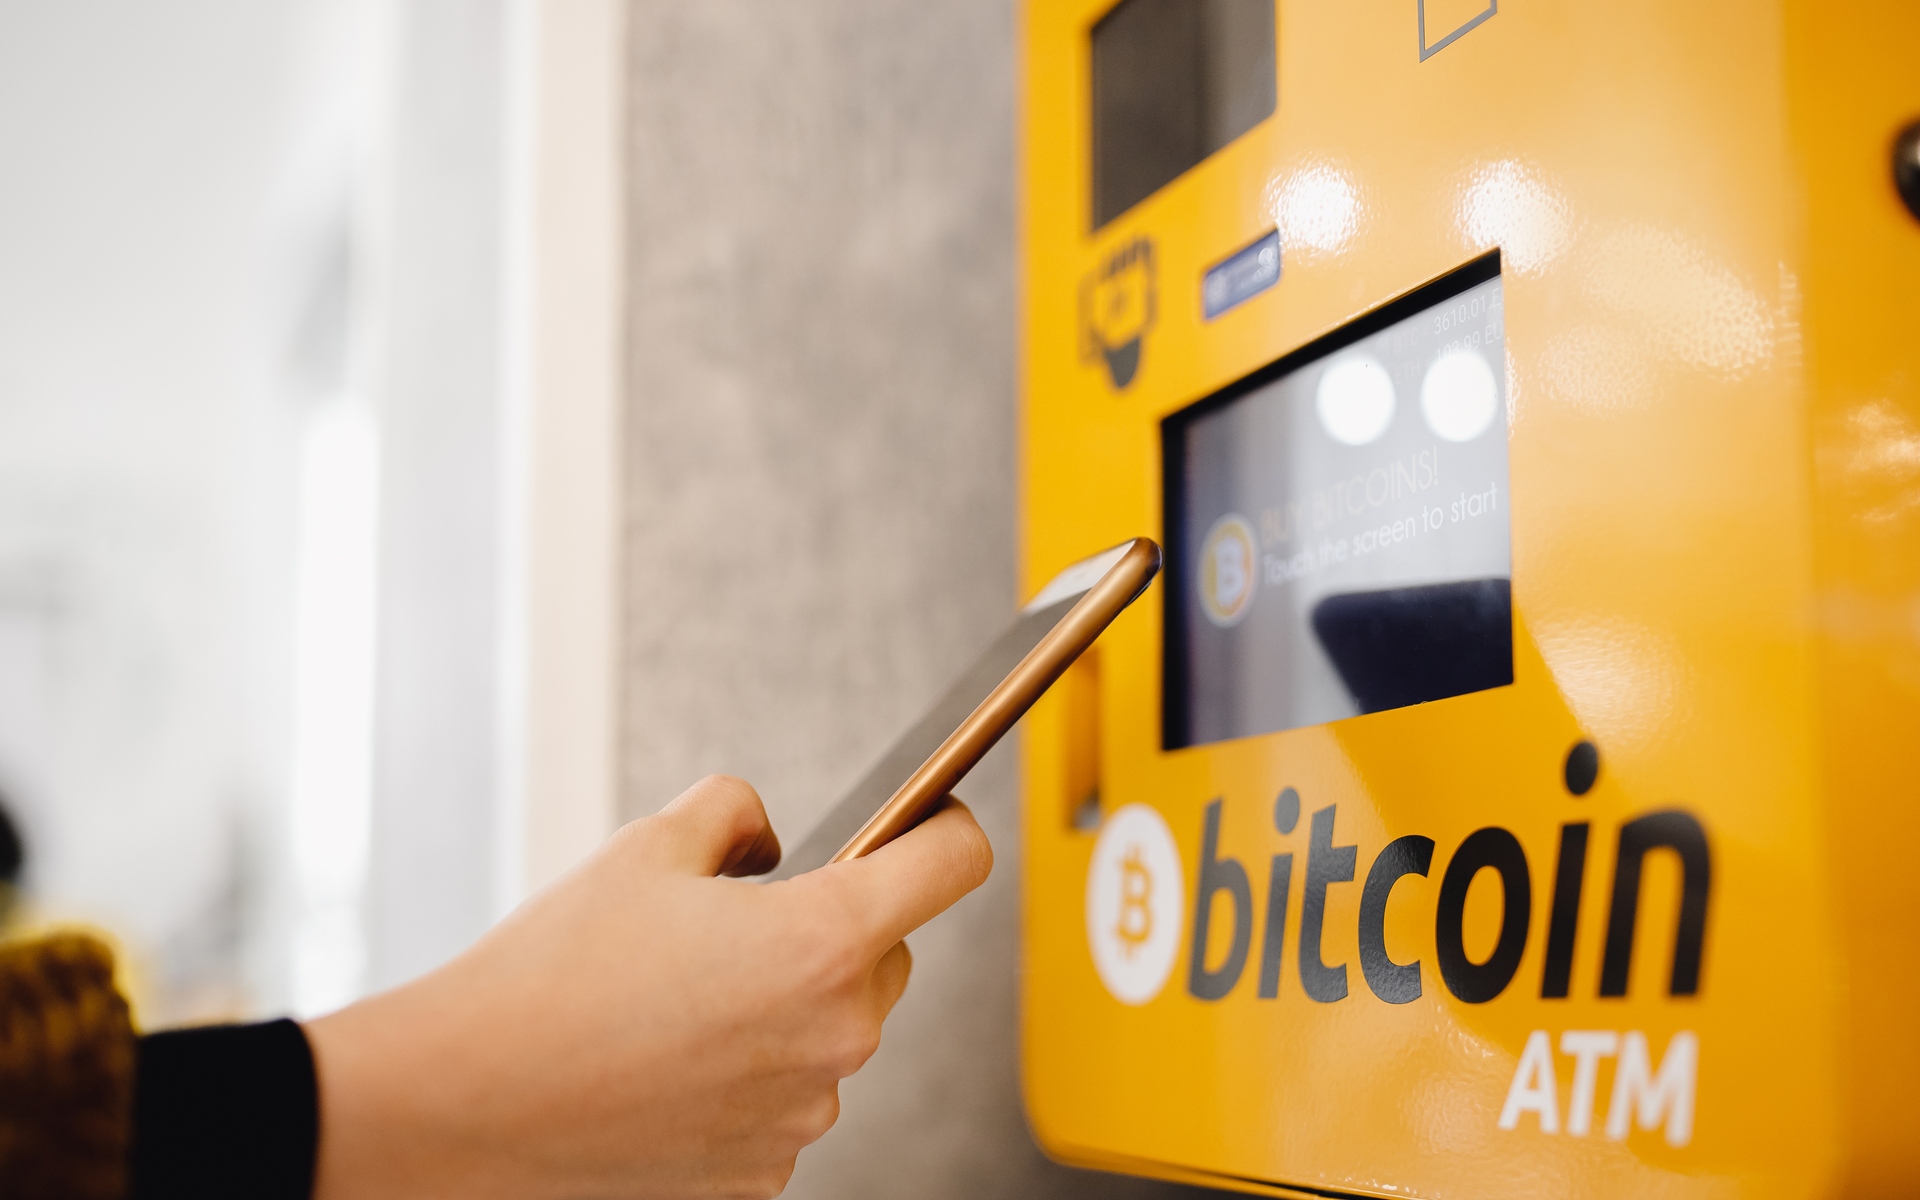 Bitcoin ATM Machine in London, New North Road